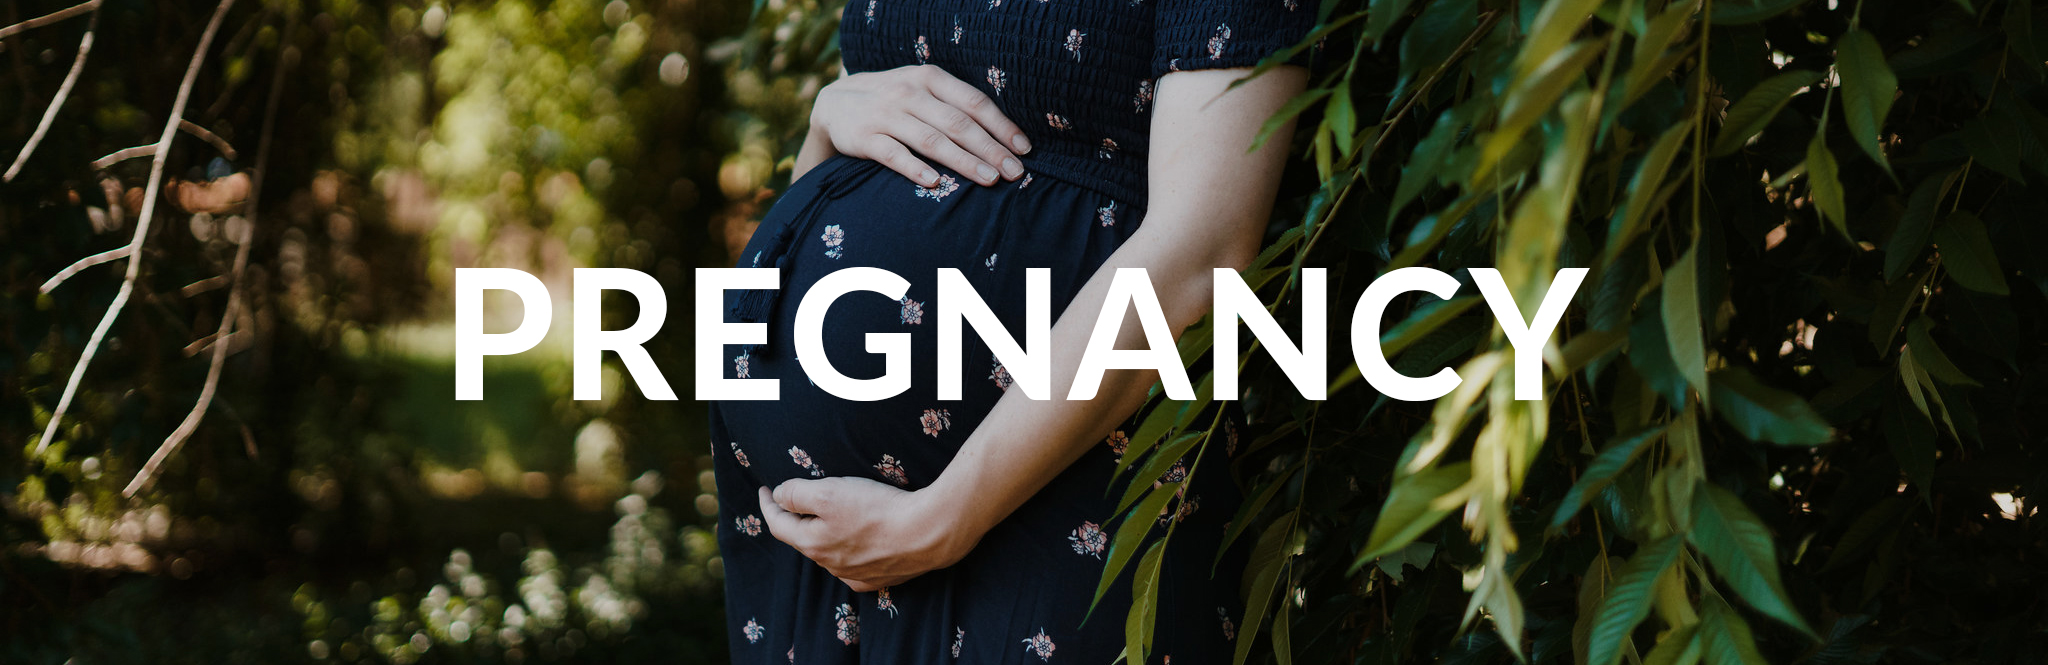 chiropractic care for pregnancy photo